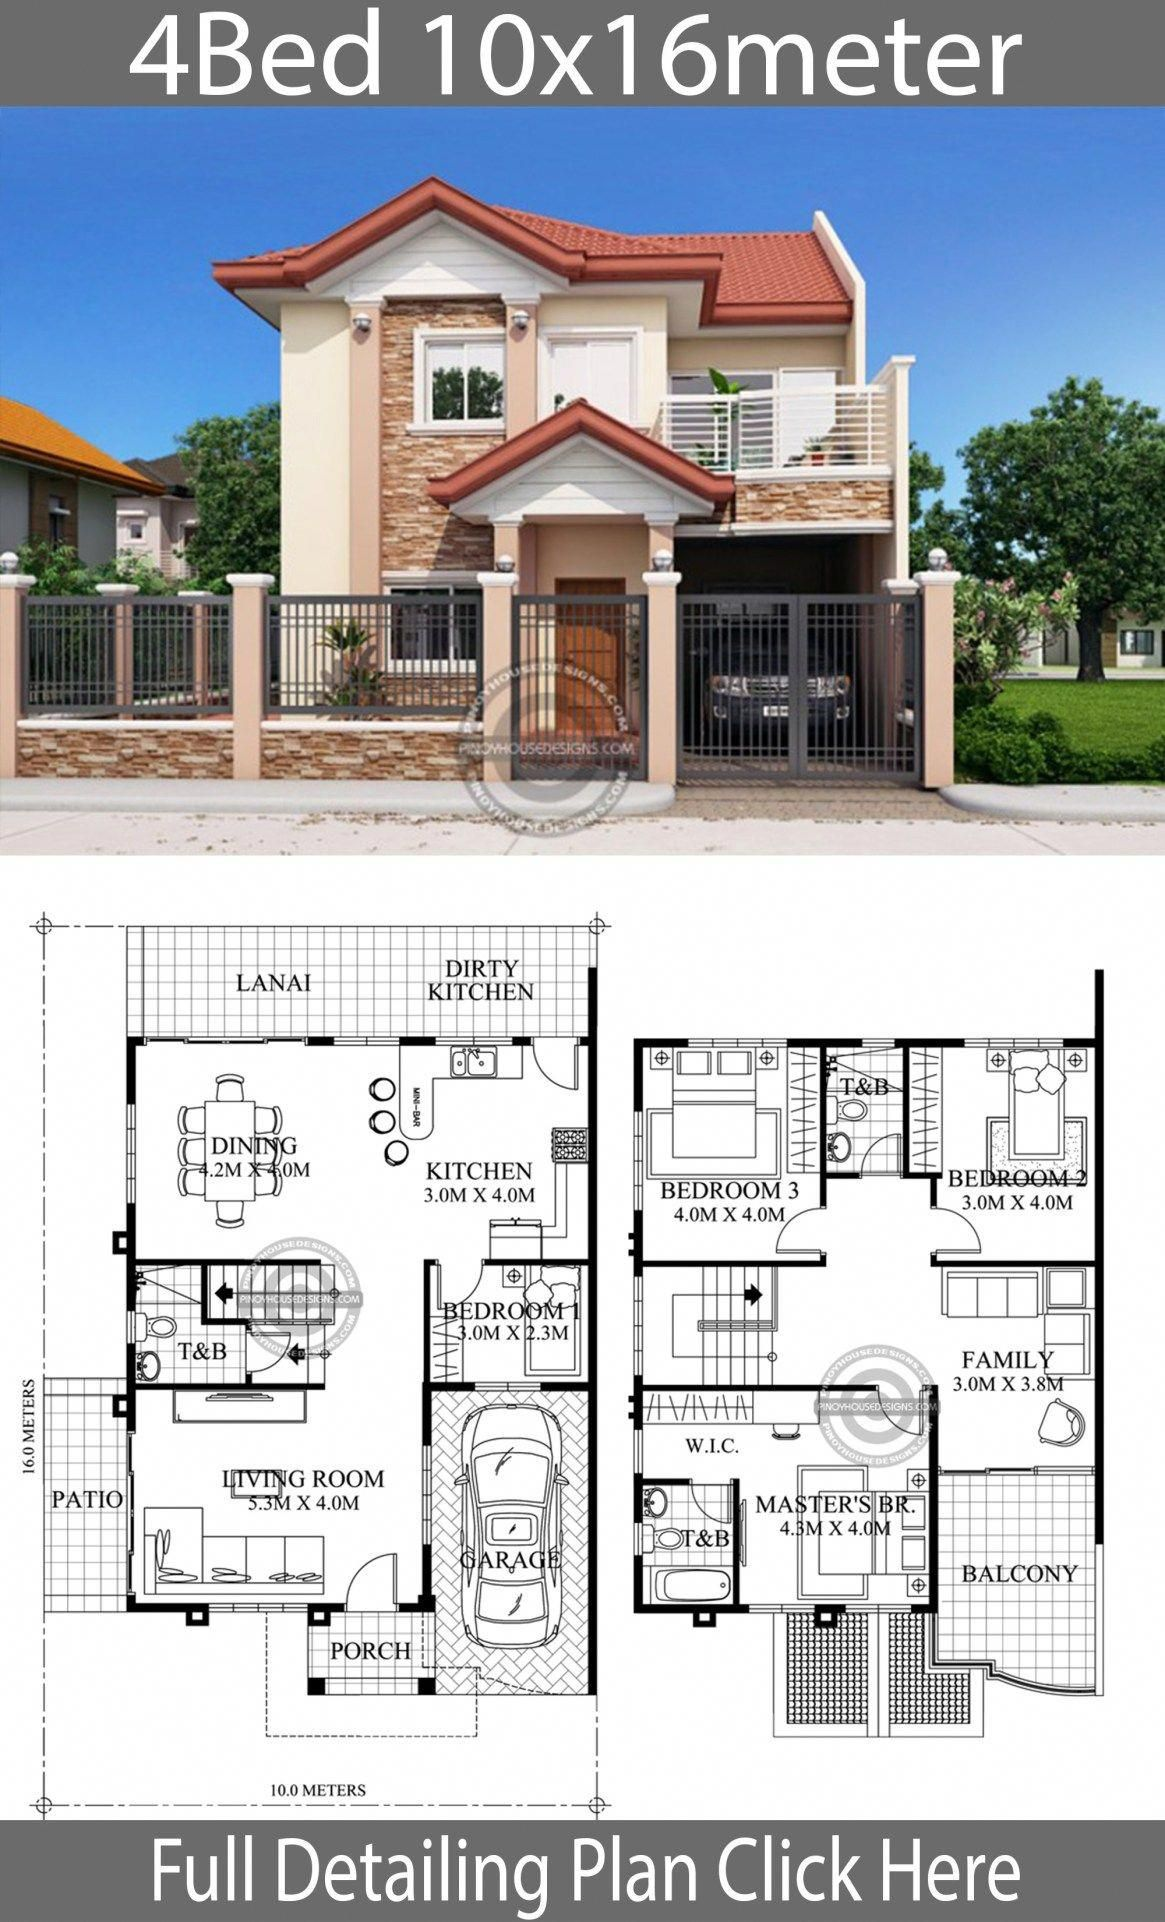 Home Design 10x16m 4 Bedrooms Home Design With Plansearch Luxuryhomeinterior Philippines House Design House Construction Plan 2 Storey House Design